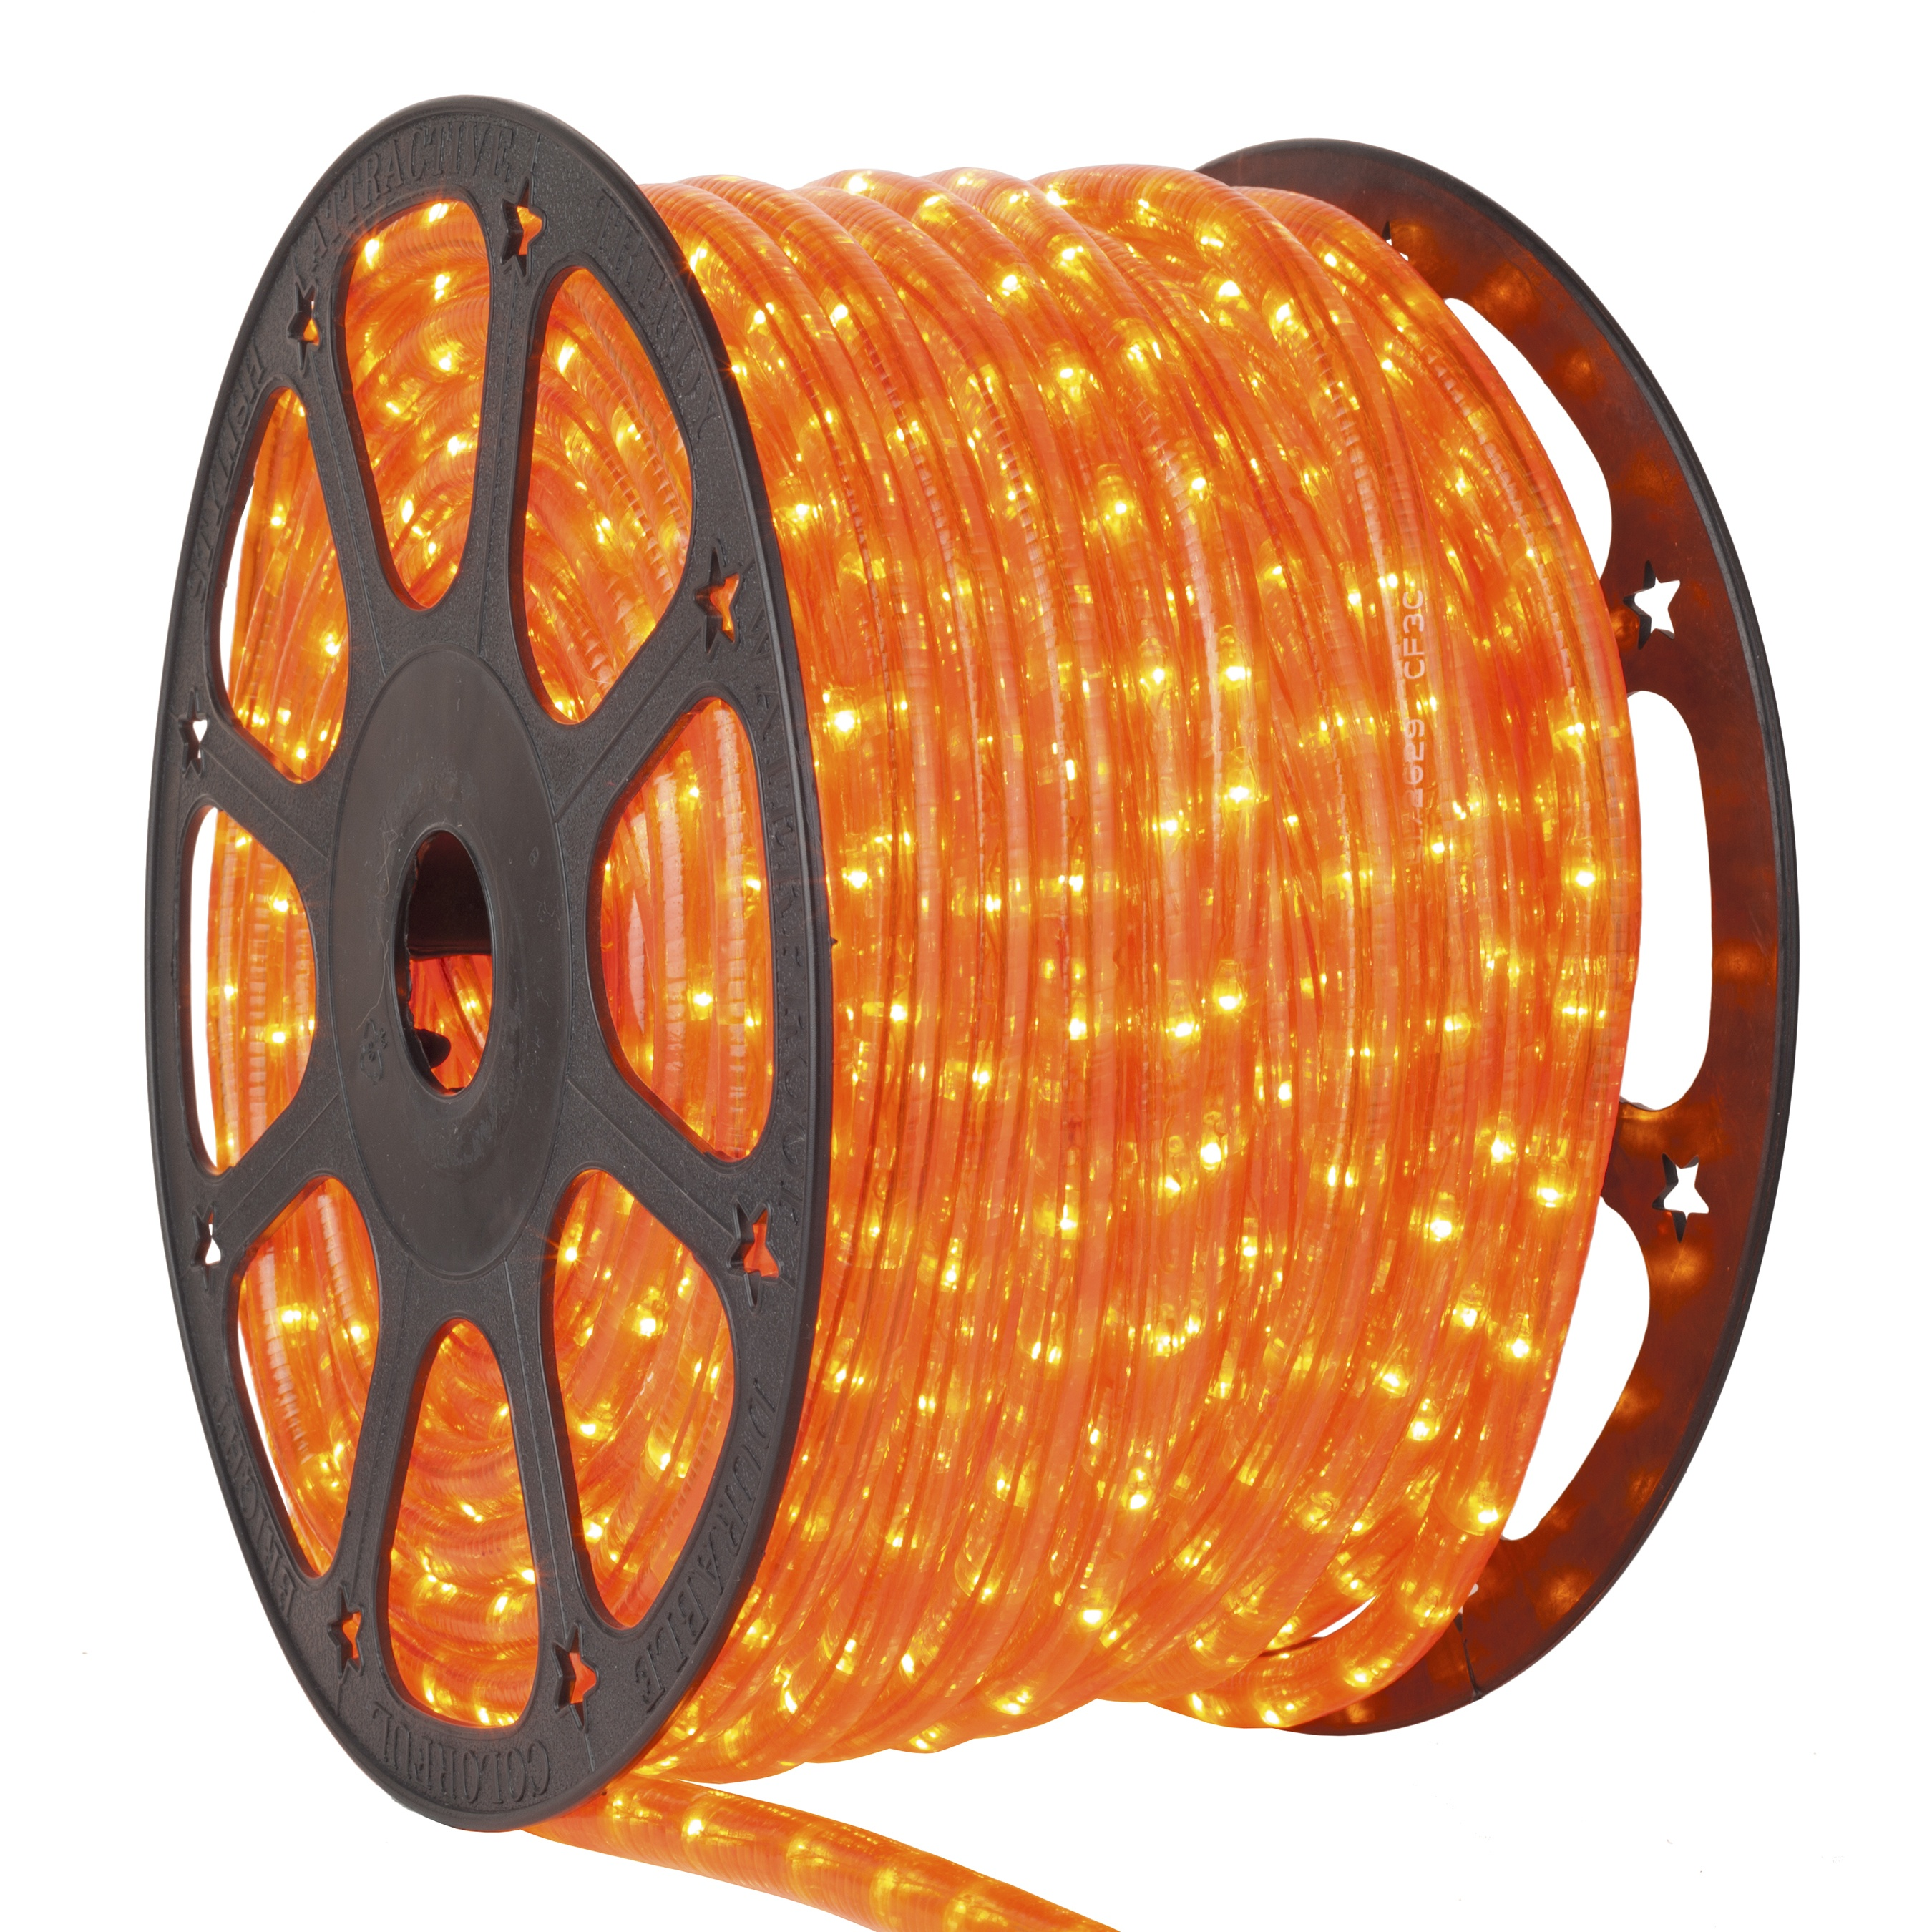 Rope Light 150 Orange Chasing Rope Light Commercial